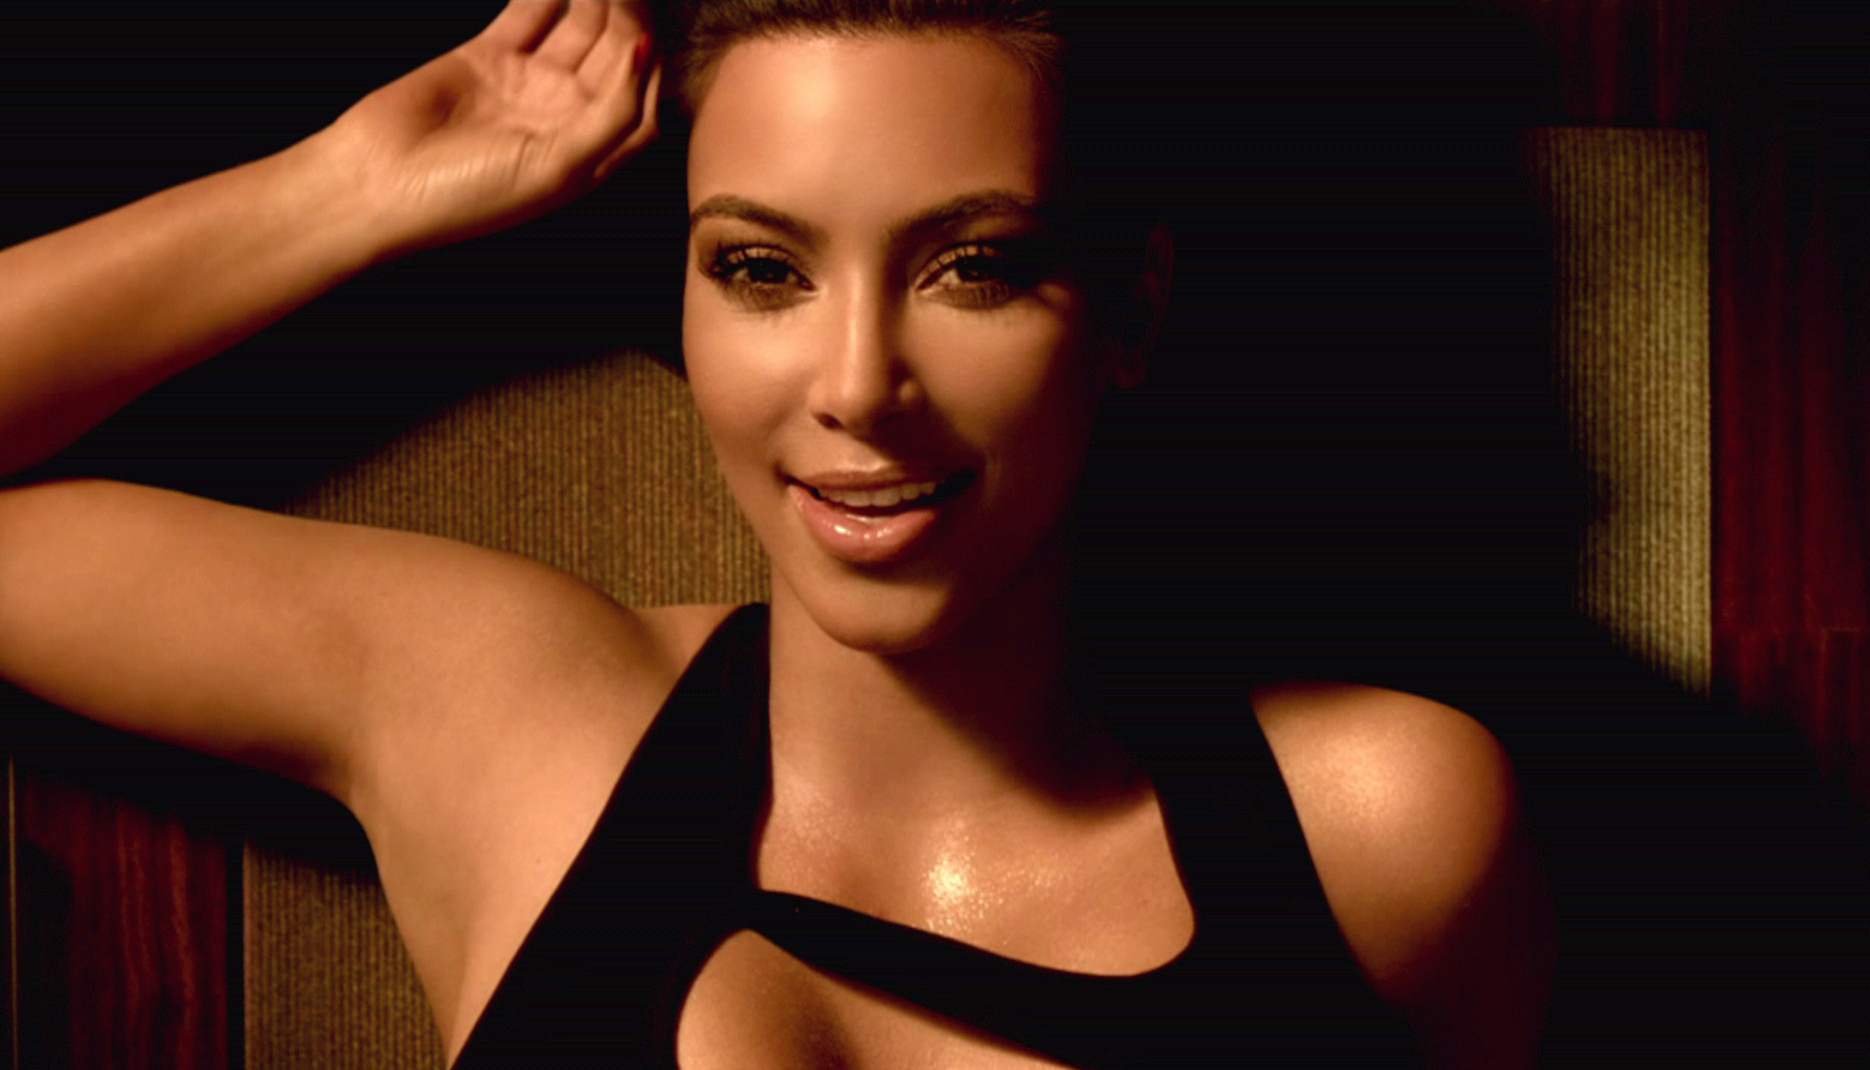 Watch kim kardashian sex tape online for free in Melbourne